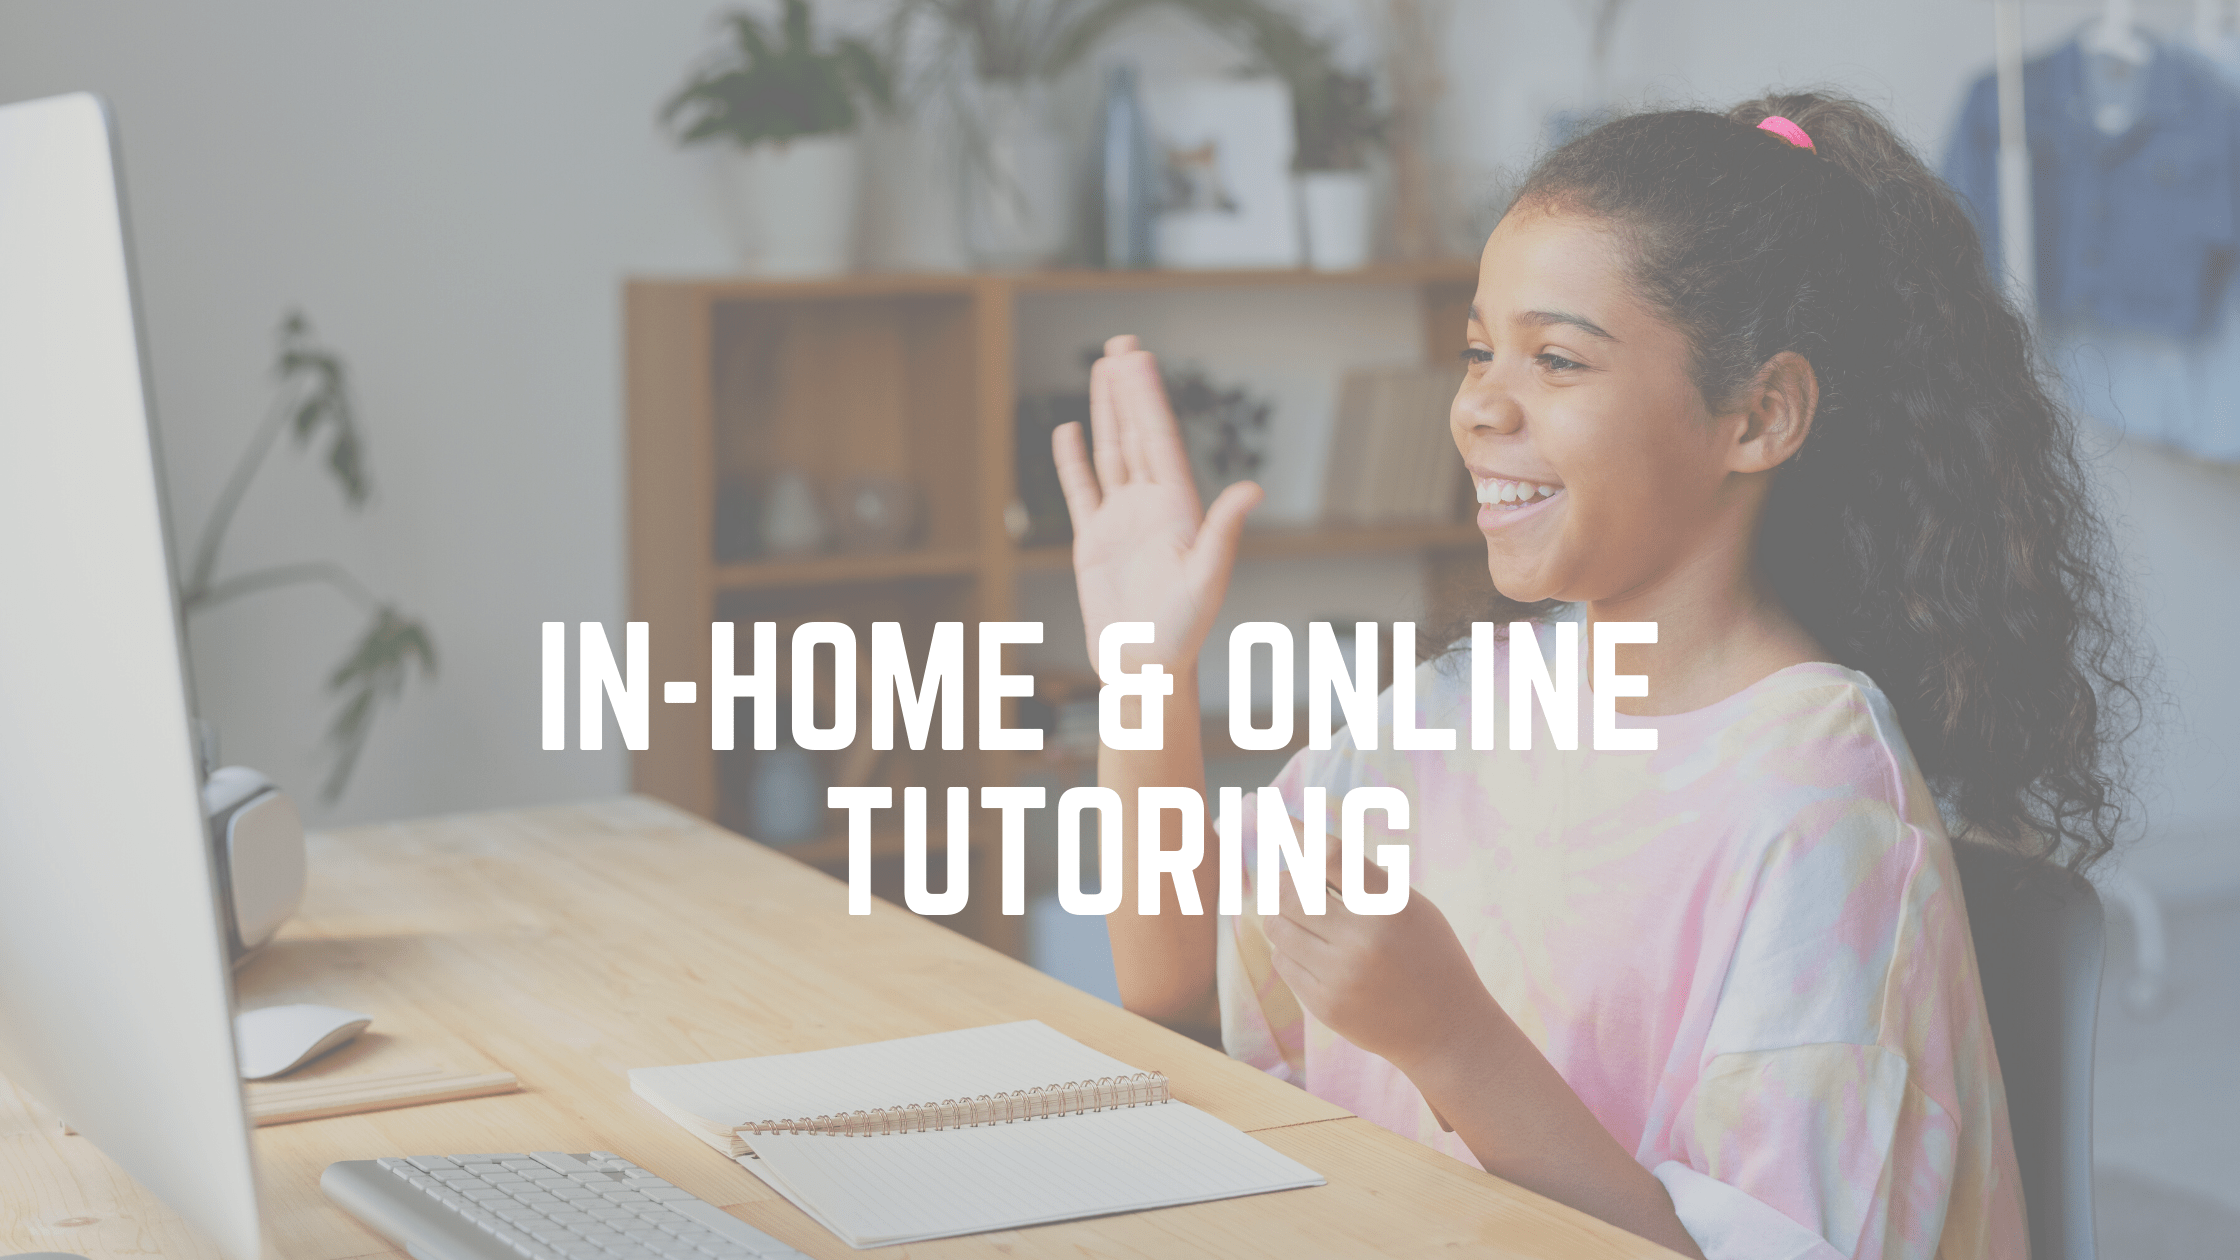 leapfrog learning tutors online and in-person tutoring